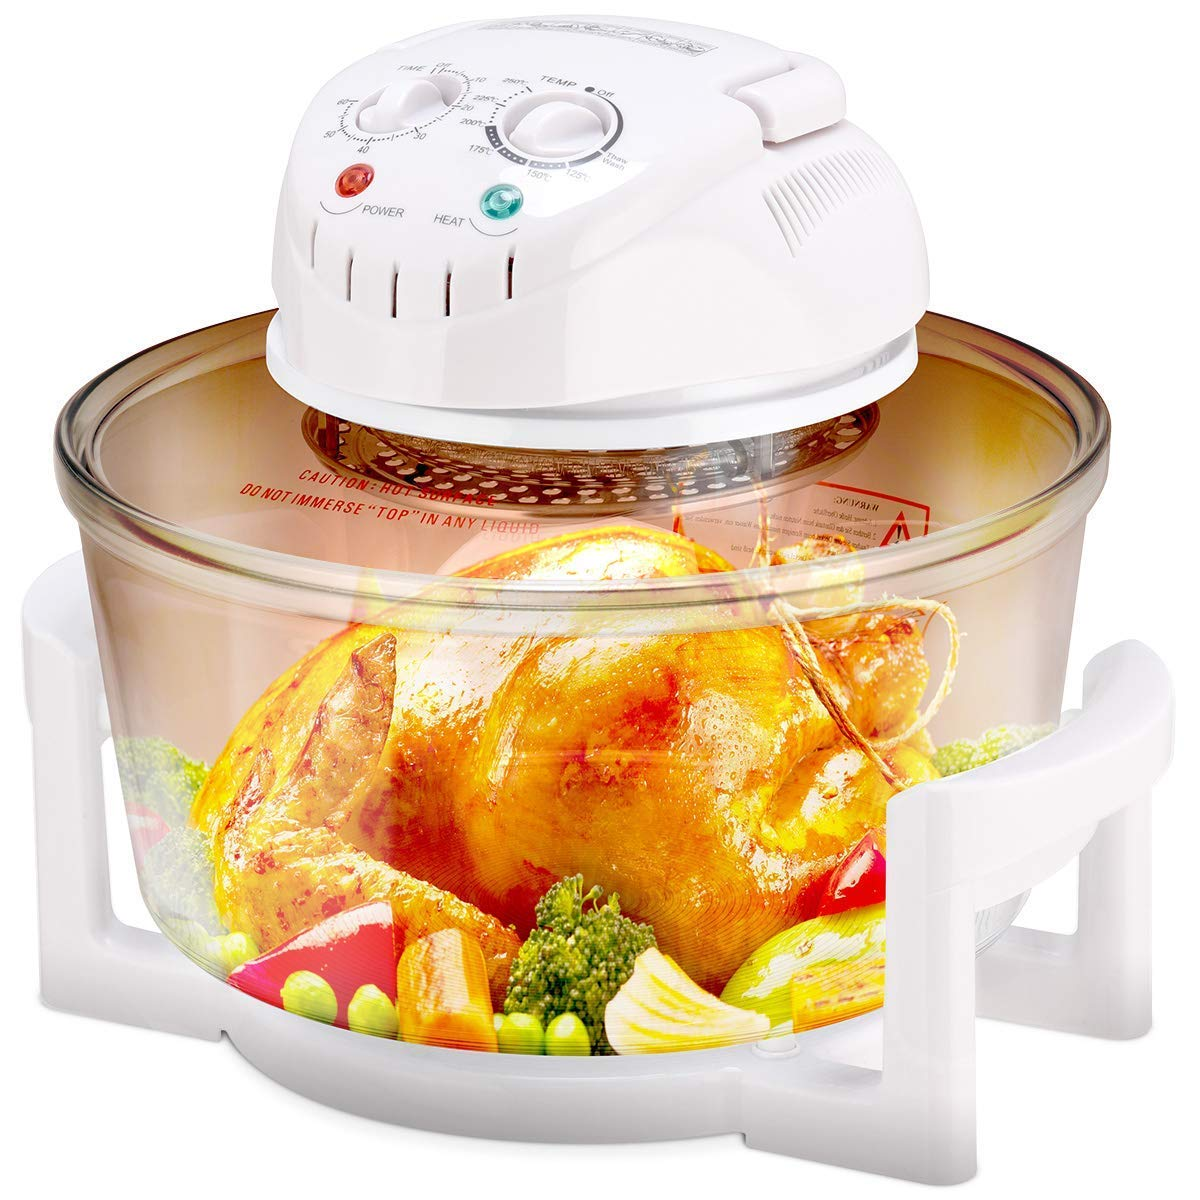 Enhanced halogen oven, 1400W 12L Air fryer with self-cleaning function, adjustable temperature and timer, includes extension ring for 17 liter rack, high rack, low rack and clamp